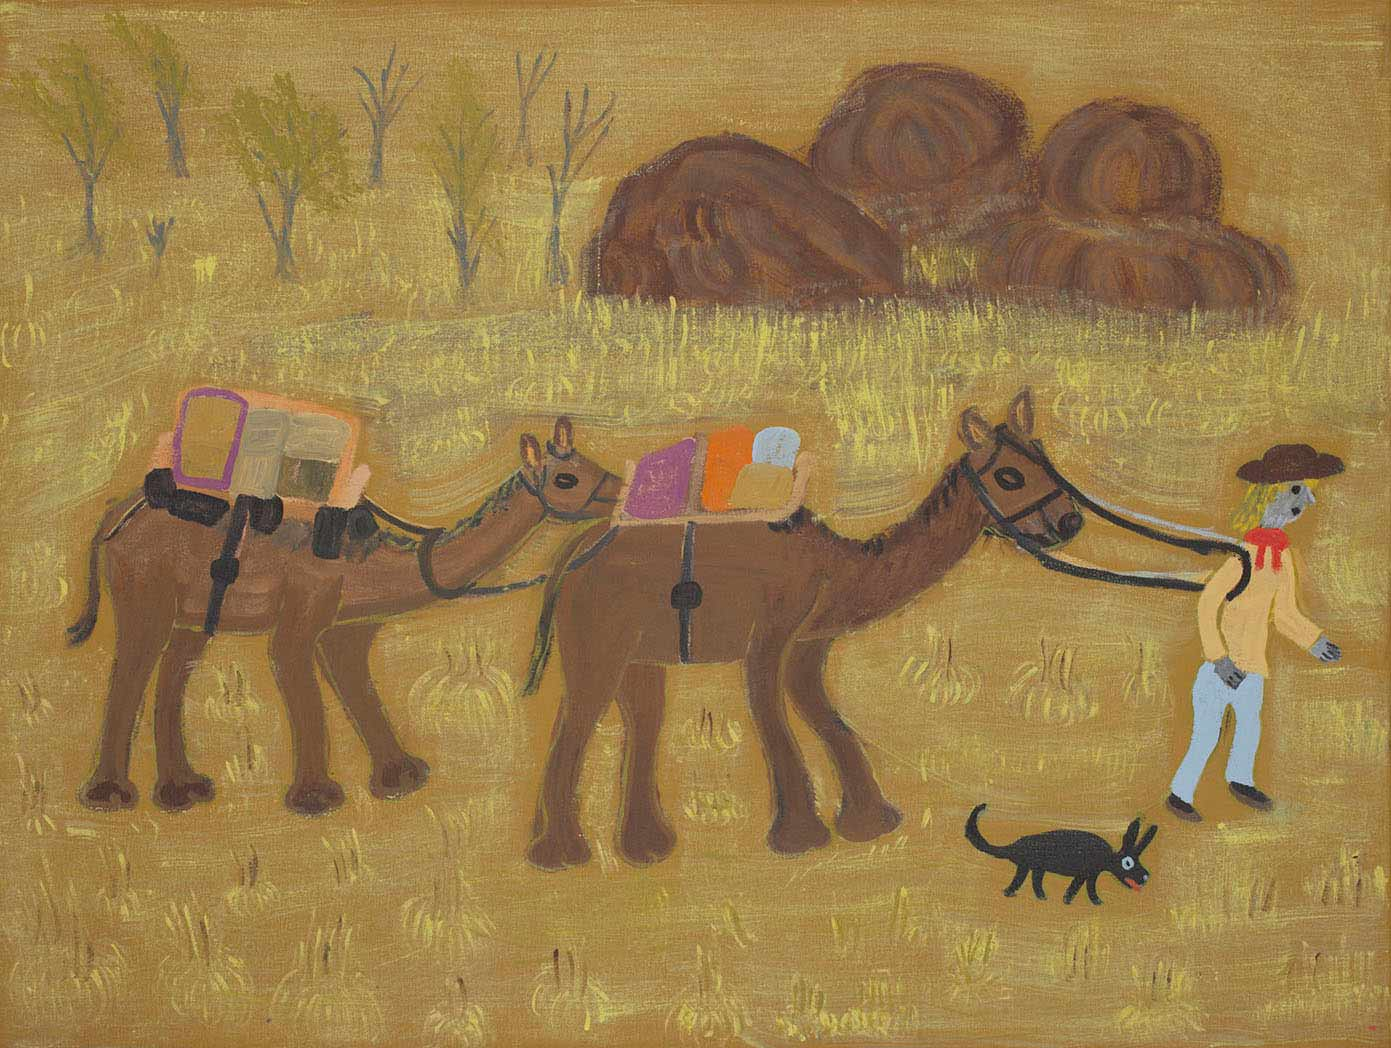 Image of an acrylic painting on canvas showing a person leading two camels, against a predominantely yellow background, with trees and large rocks in the background. A small animal runs alongside the person.